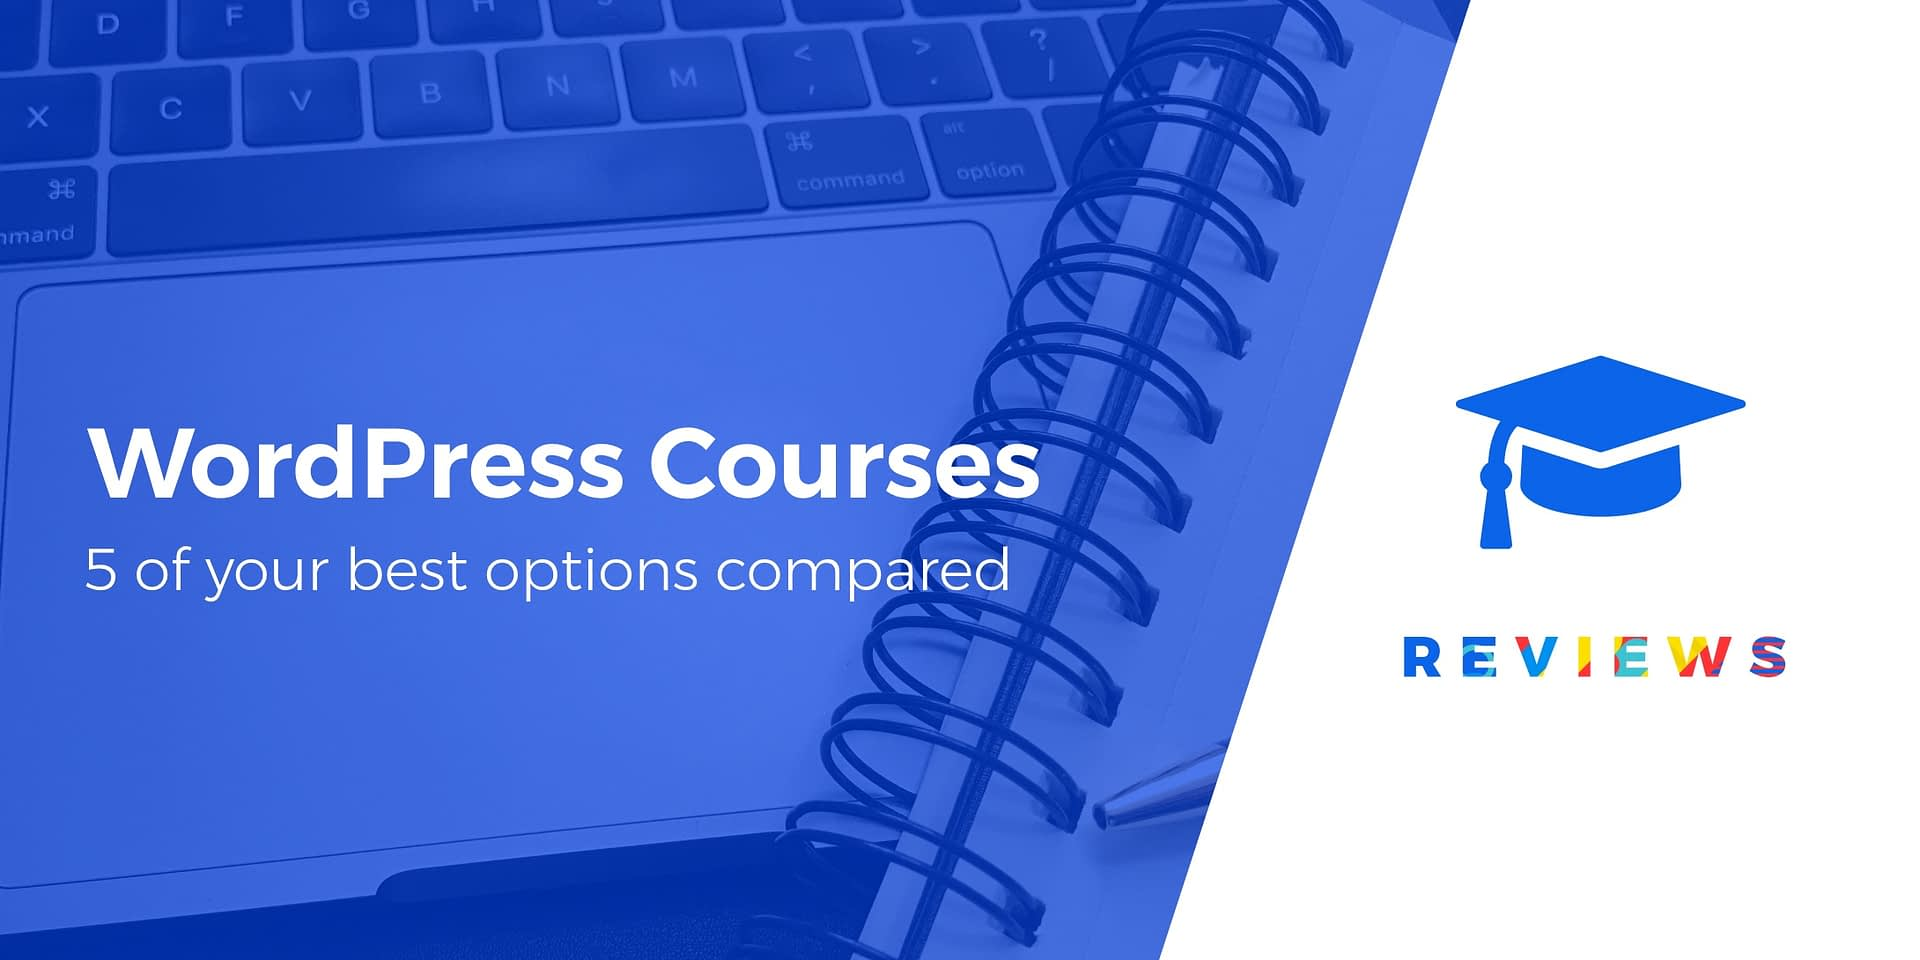 Online WordPress Courses: 5 of Your Best Options Compared